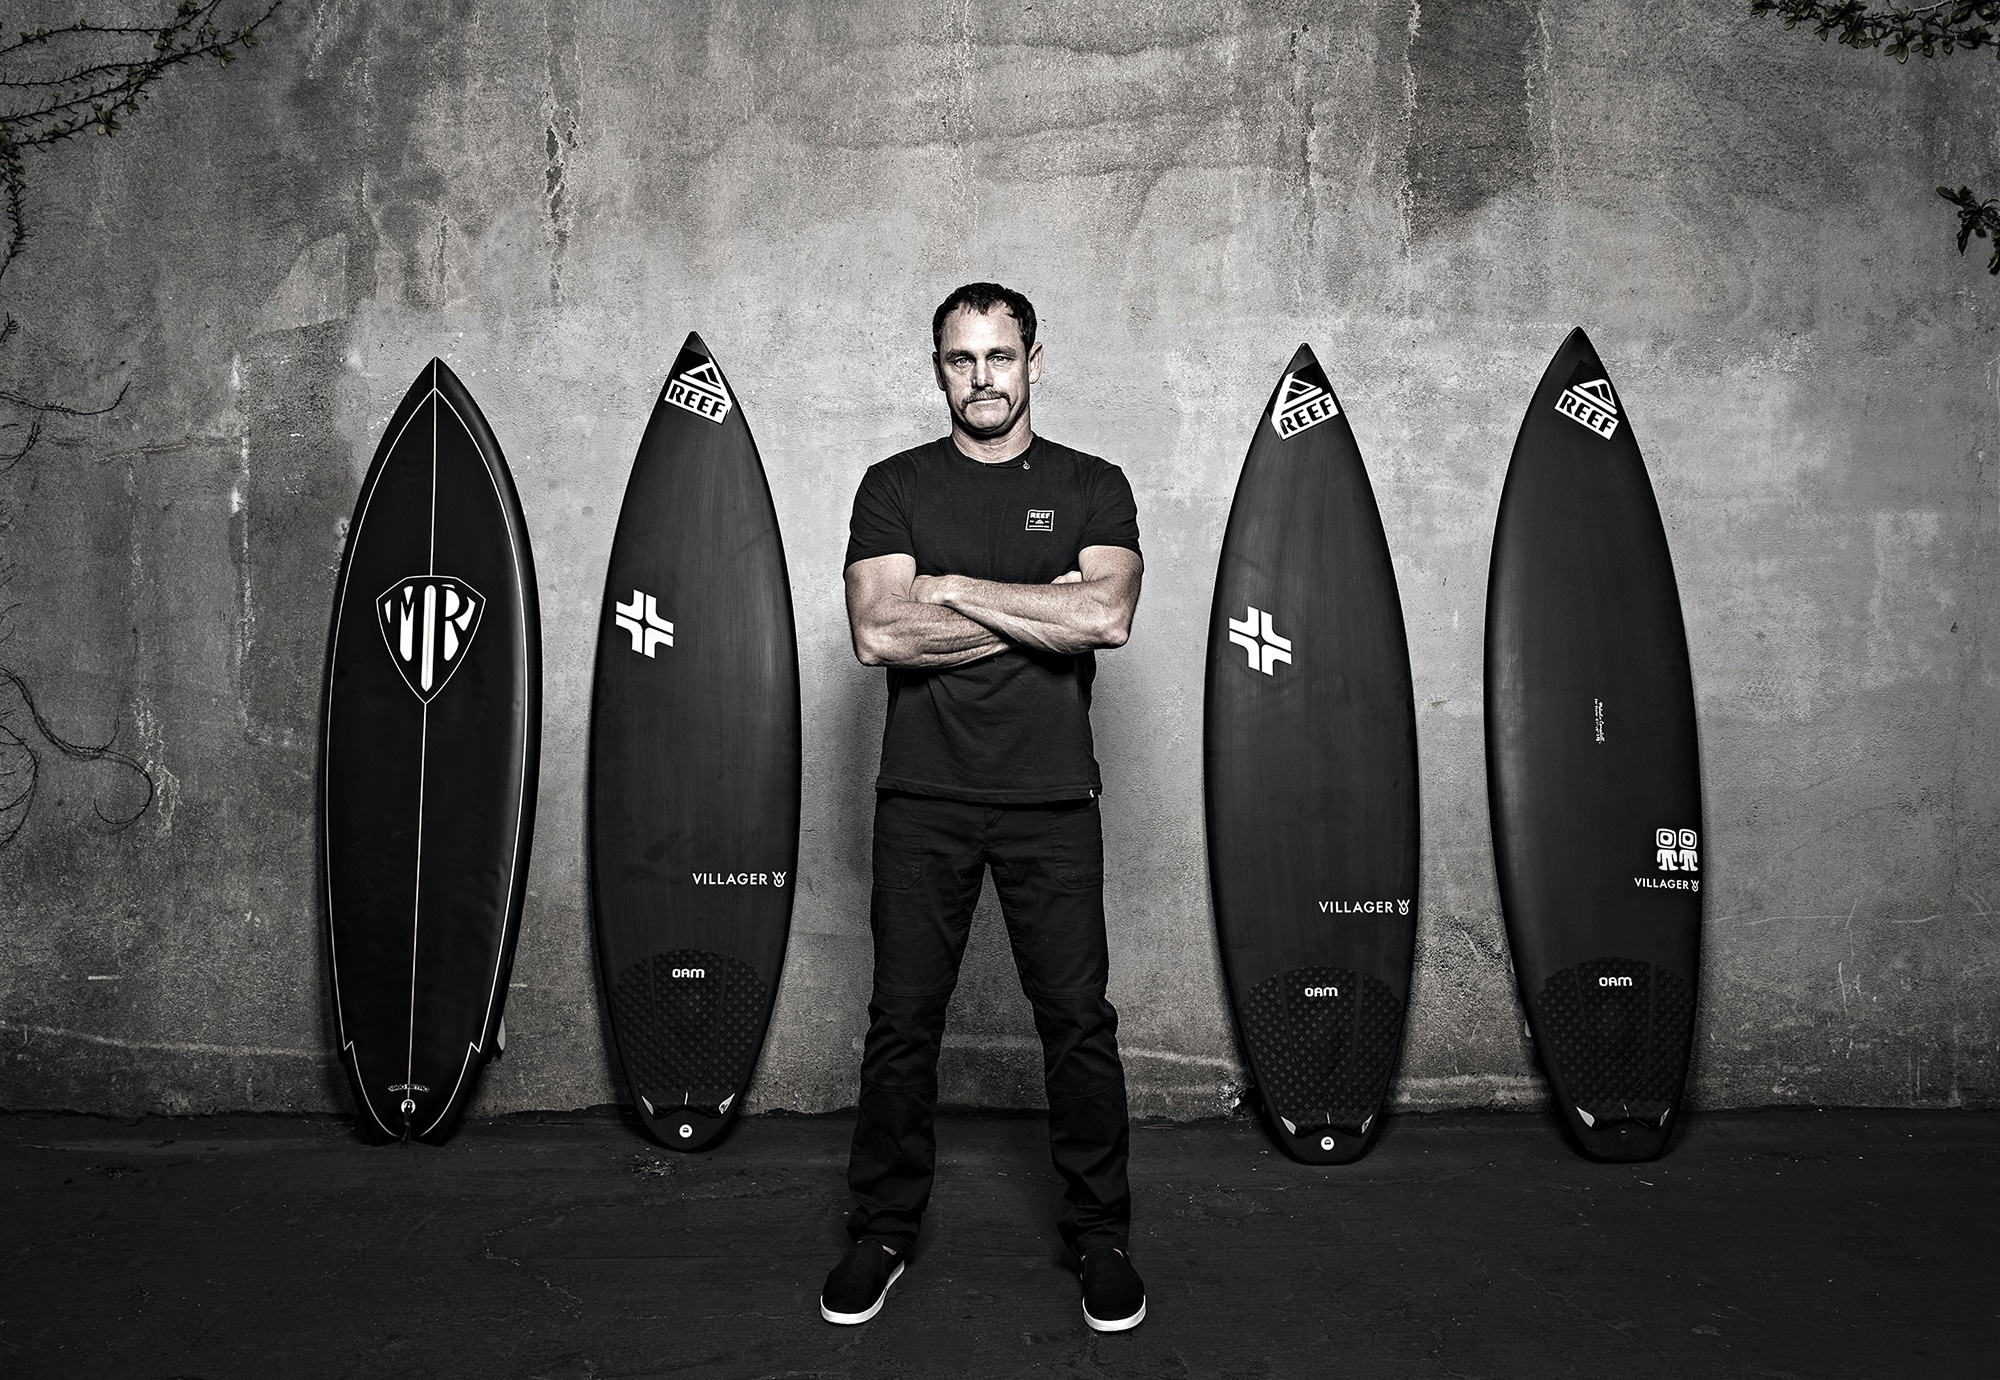 Taylor Knox Black is a colour world premiere